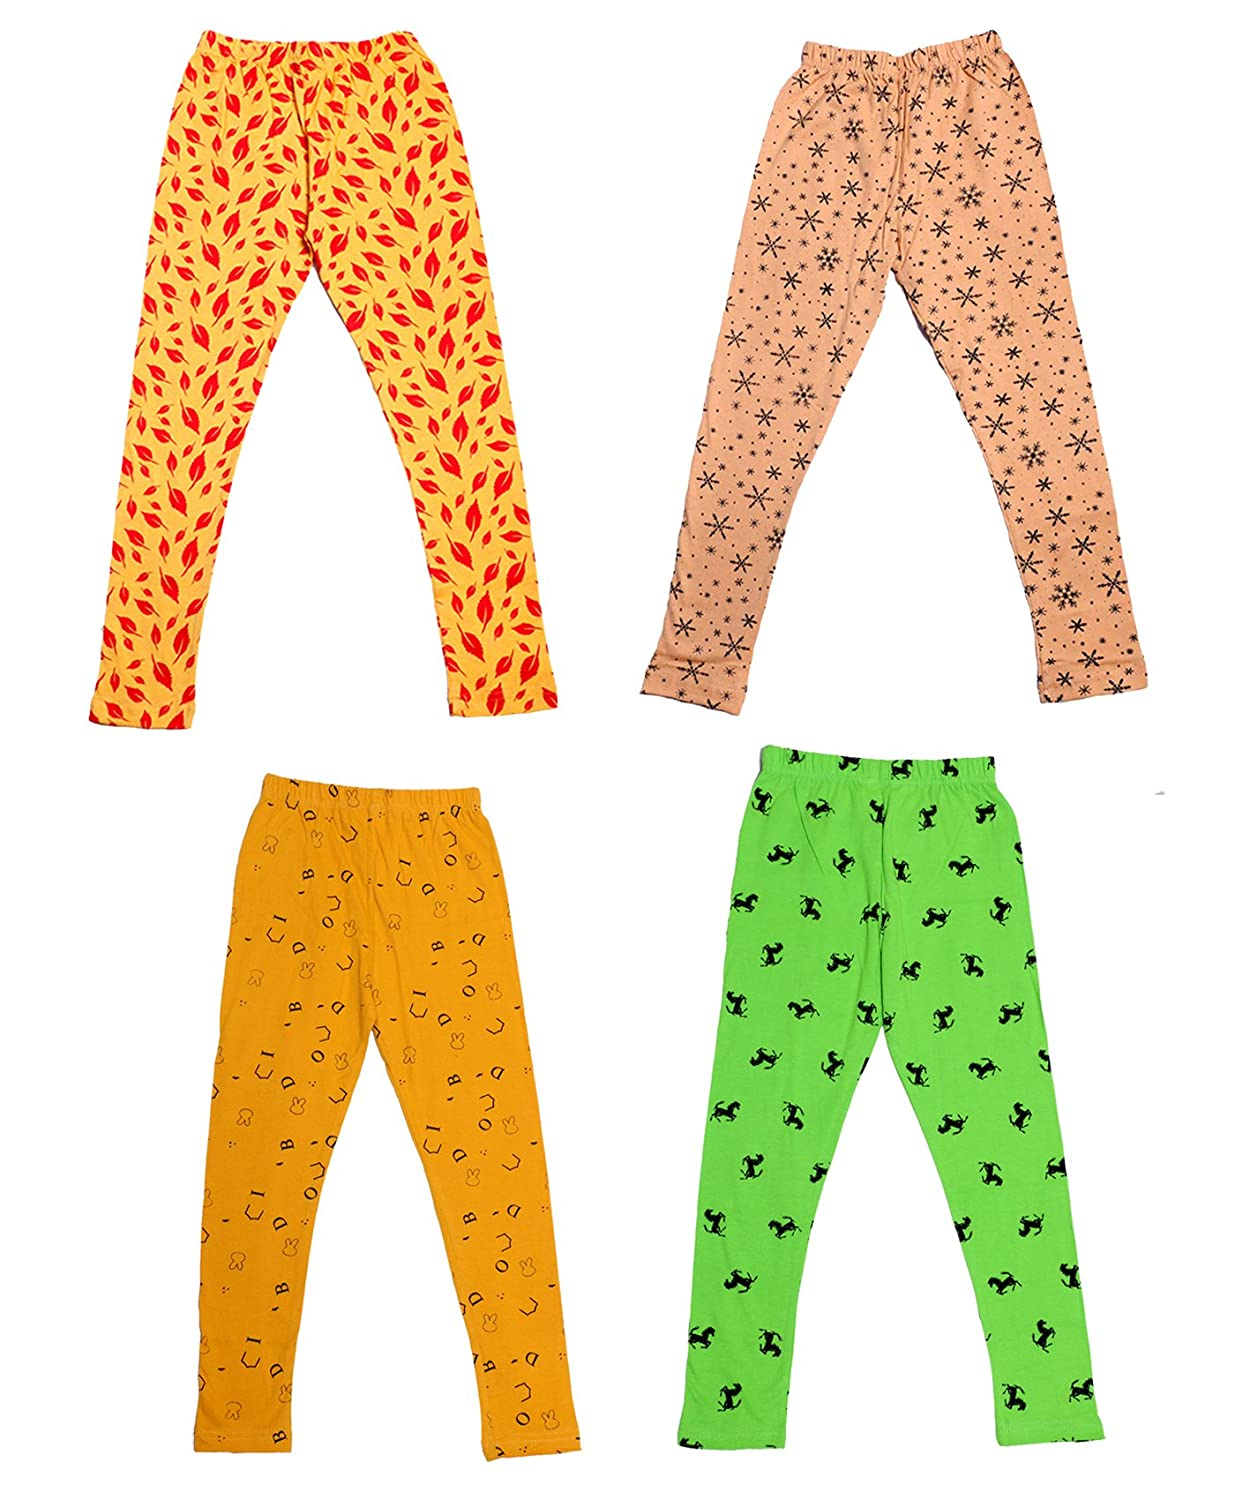 Indistar Girls Super Soft and Stylish Cotton Printed Churidar Legging(Pack Of 4)